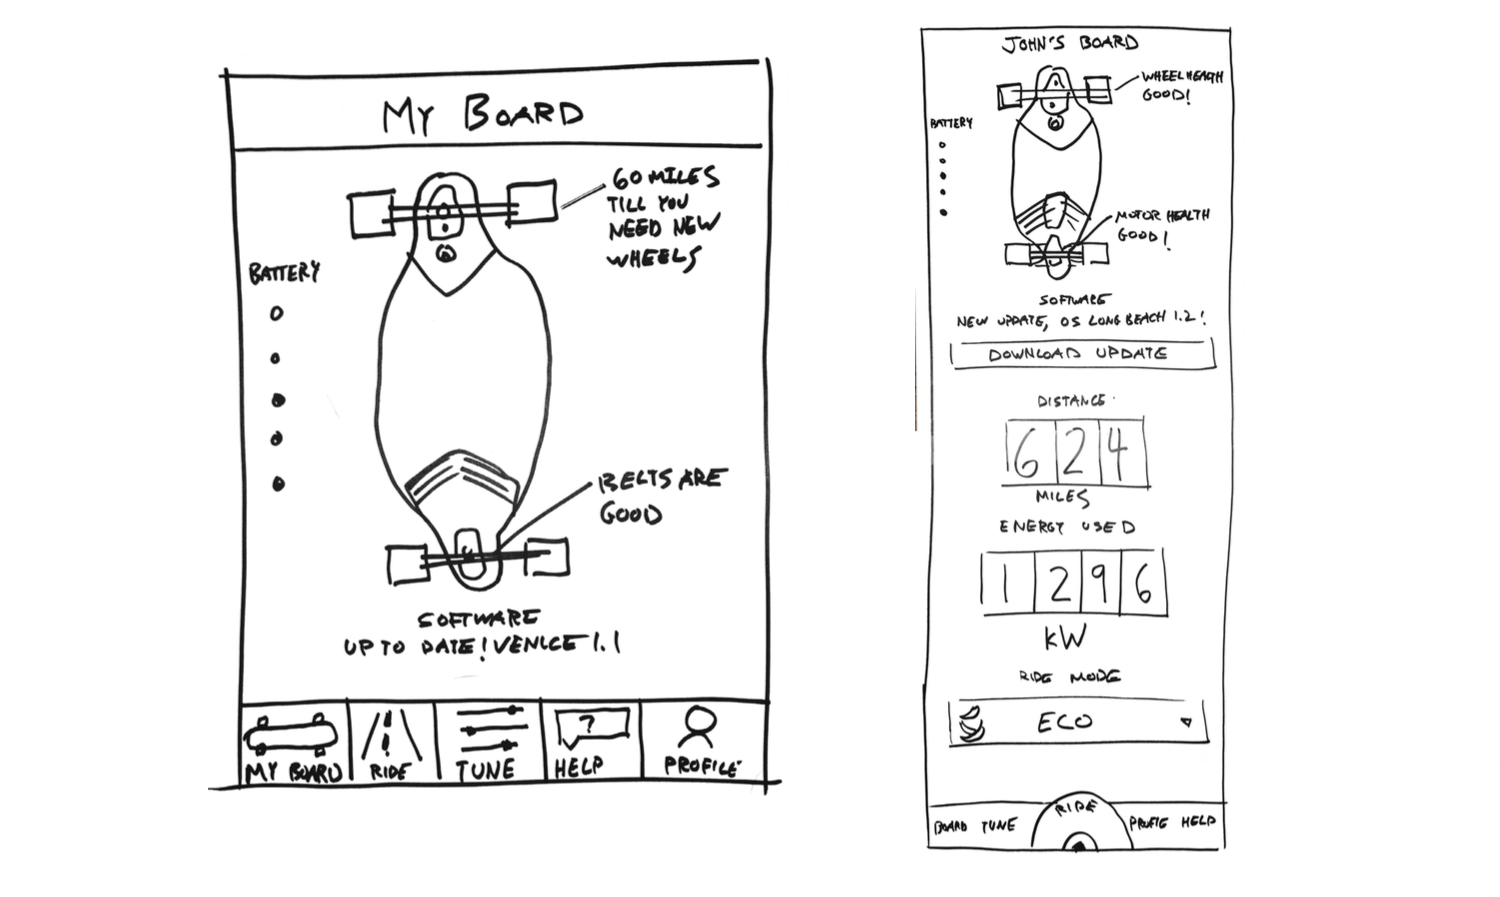 third example of mobile wireframe